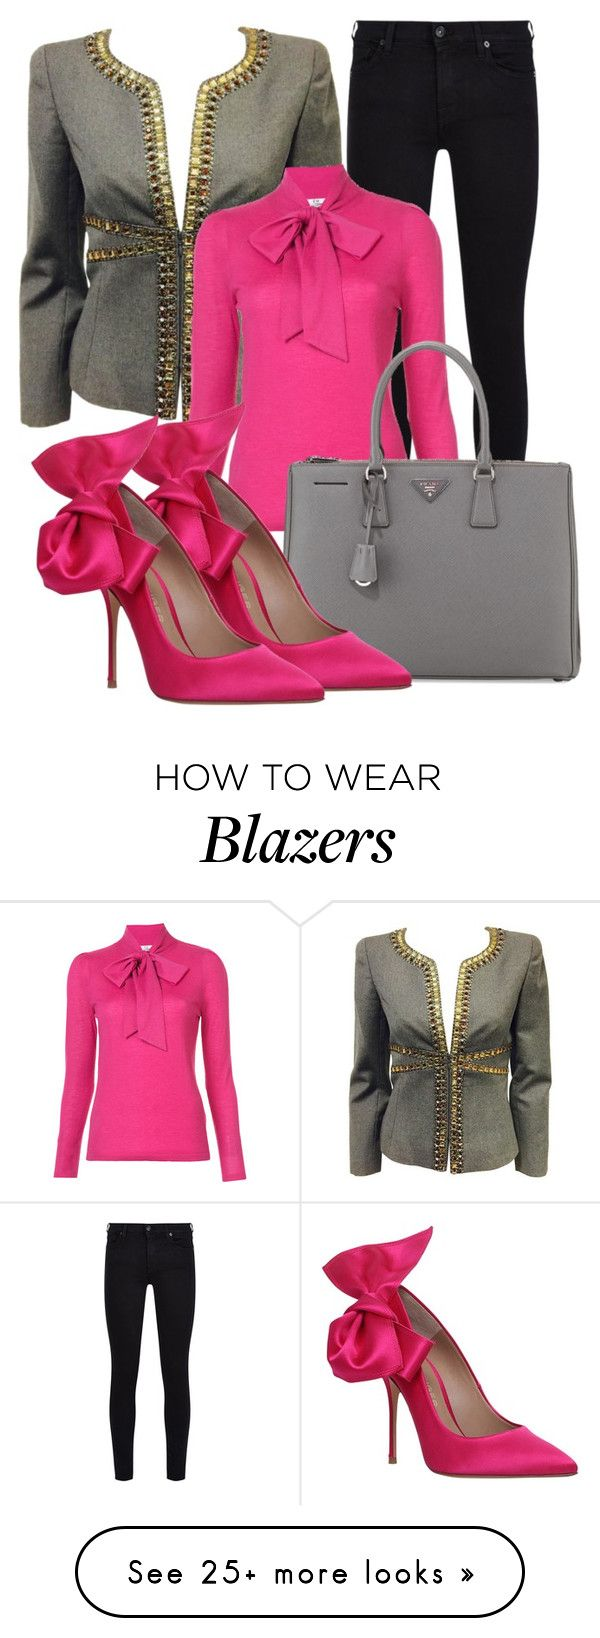 """""""grey blazer"""" by atenaide86 on Polyvore featuring 7 For All Mankind, CO, Prada and Kurt Geiger"""